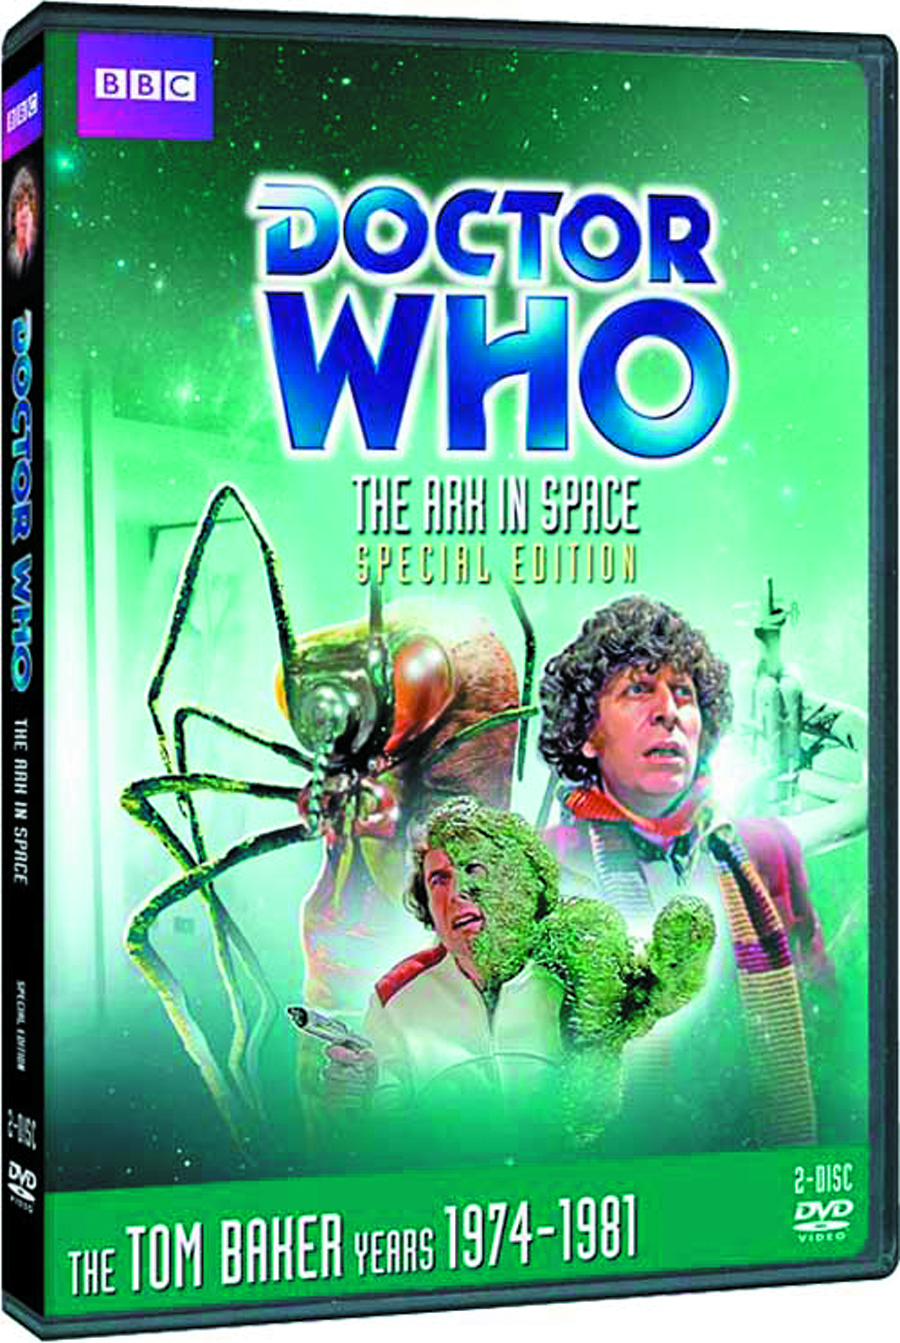 DOCTOR WHO ARK IN SPACE DVD